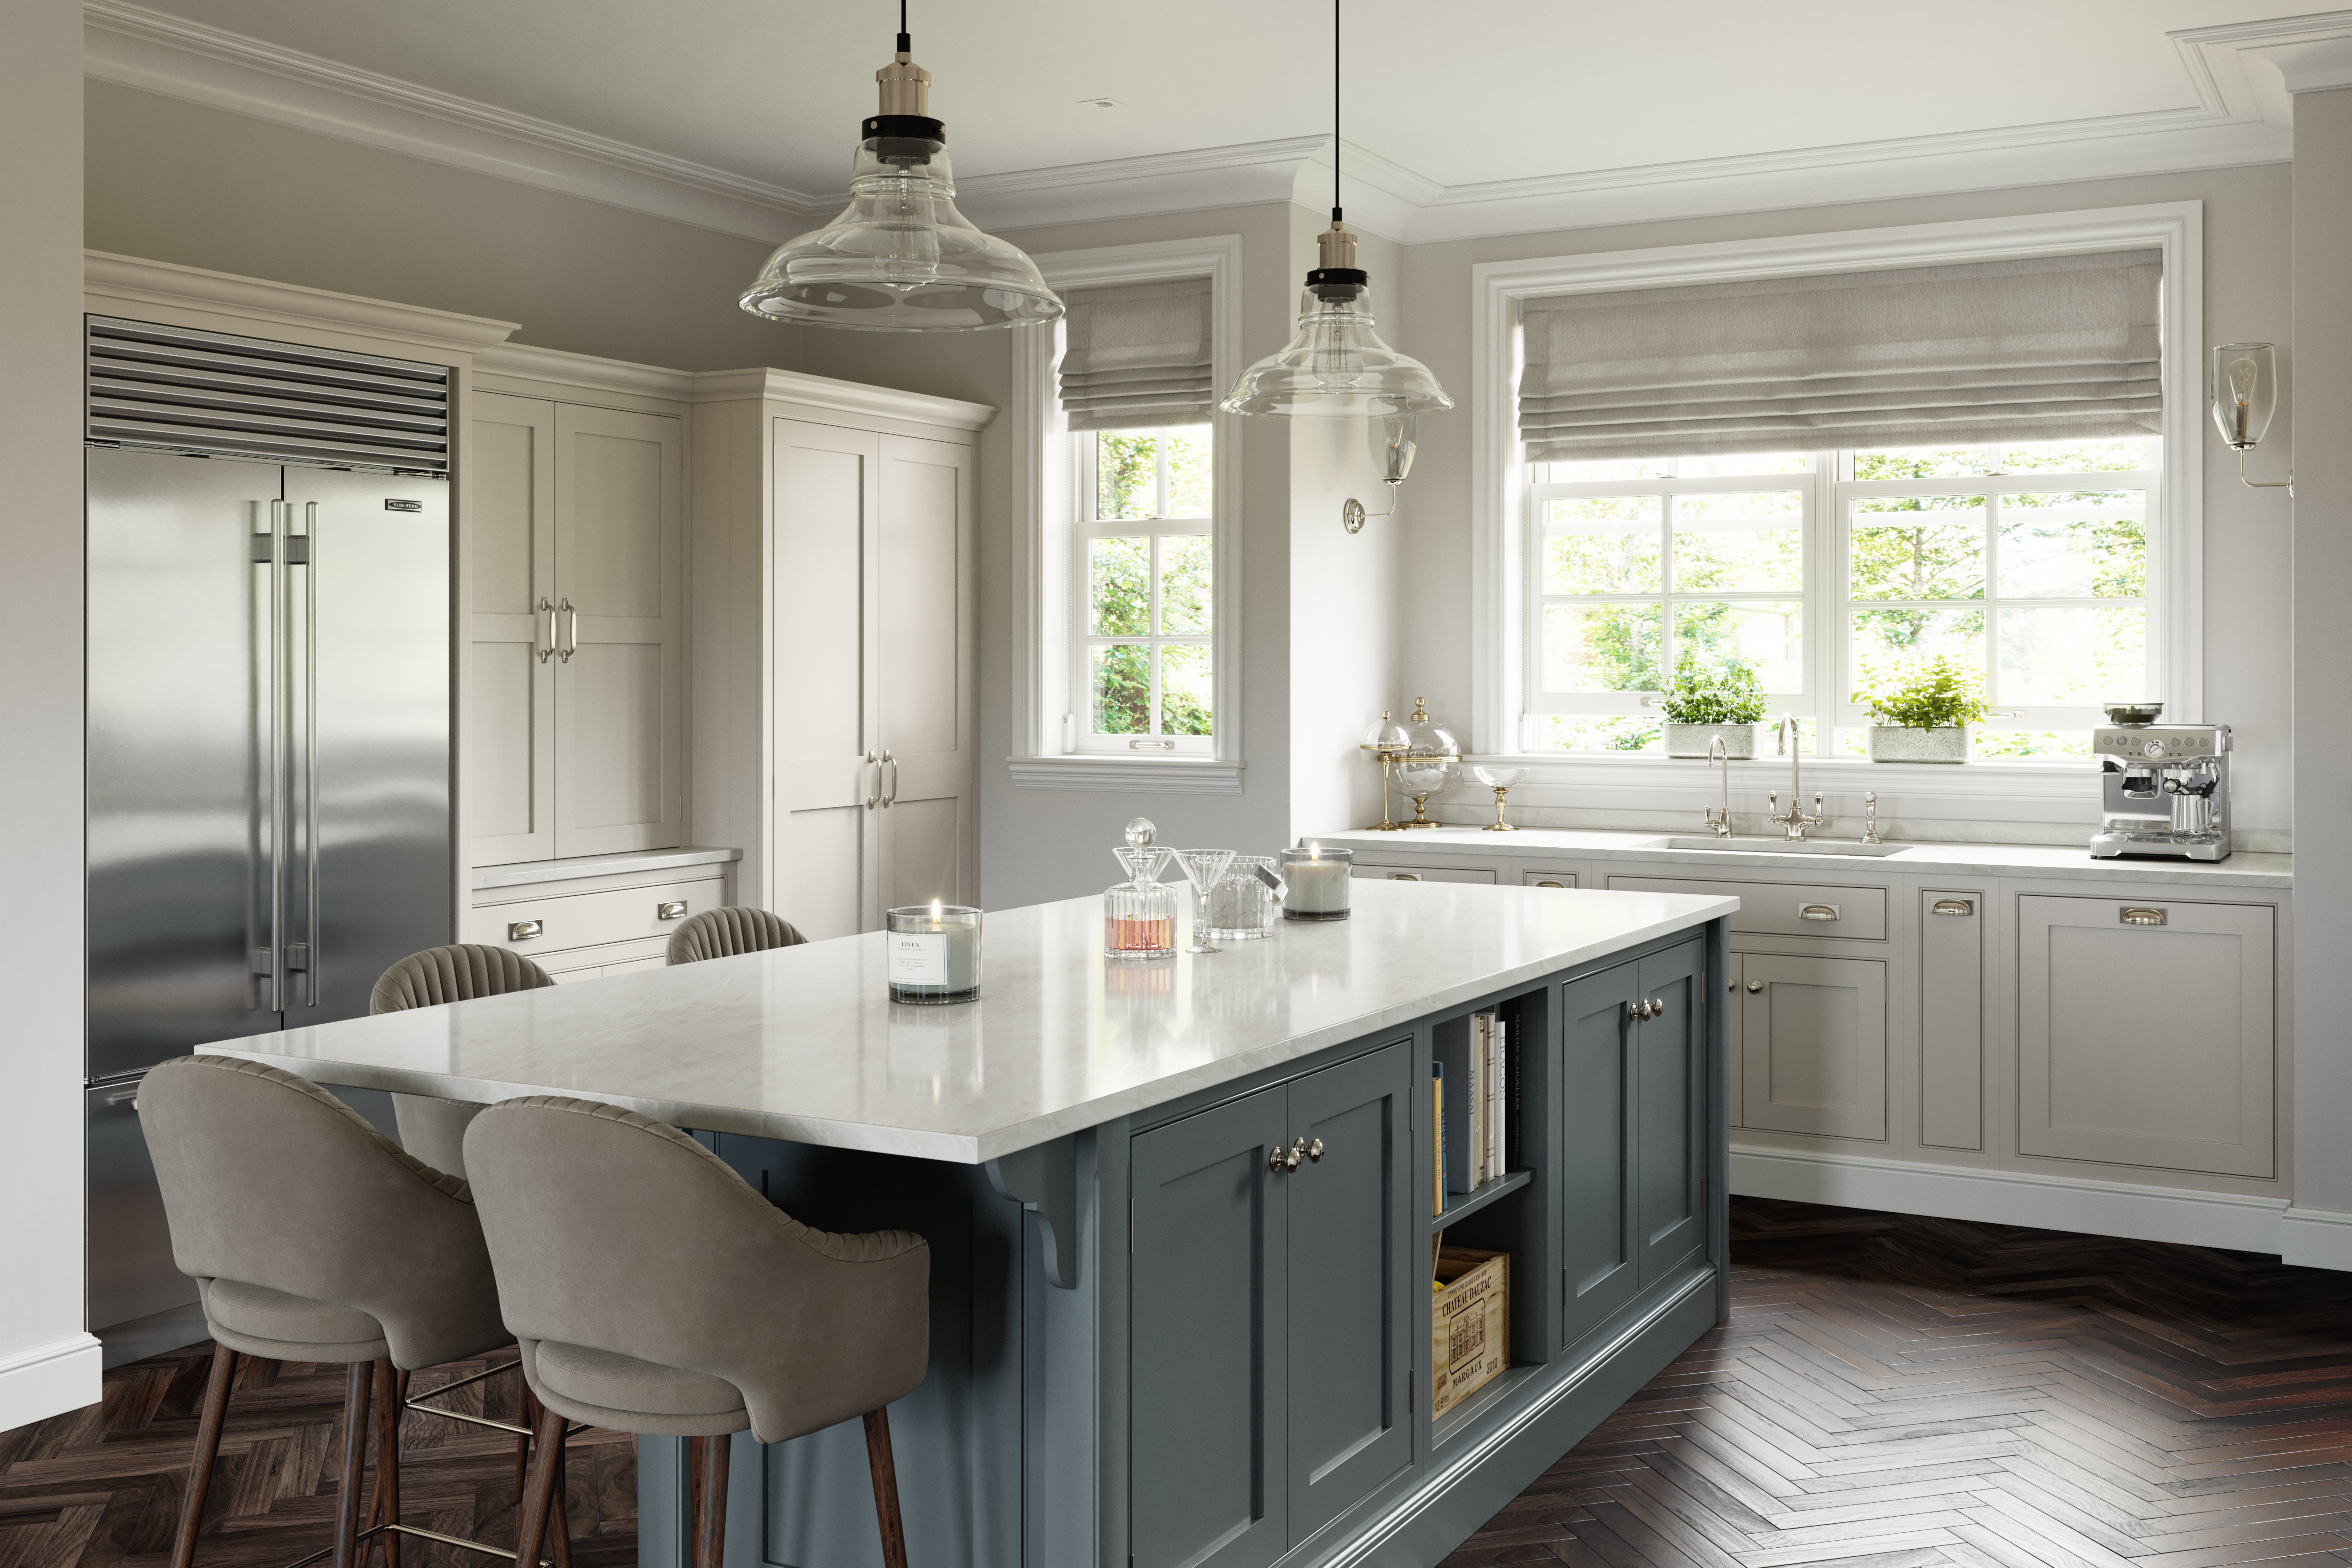 Ex display shaker style English classic kitchen sink side elevation